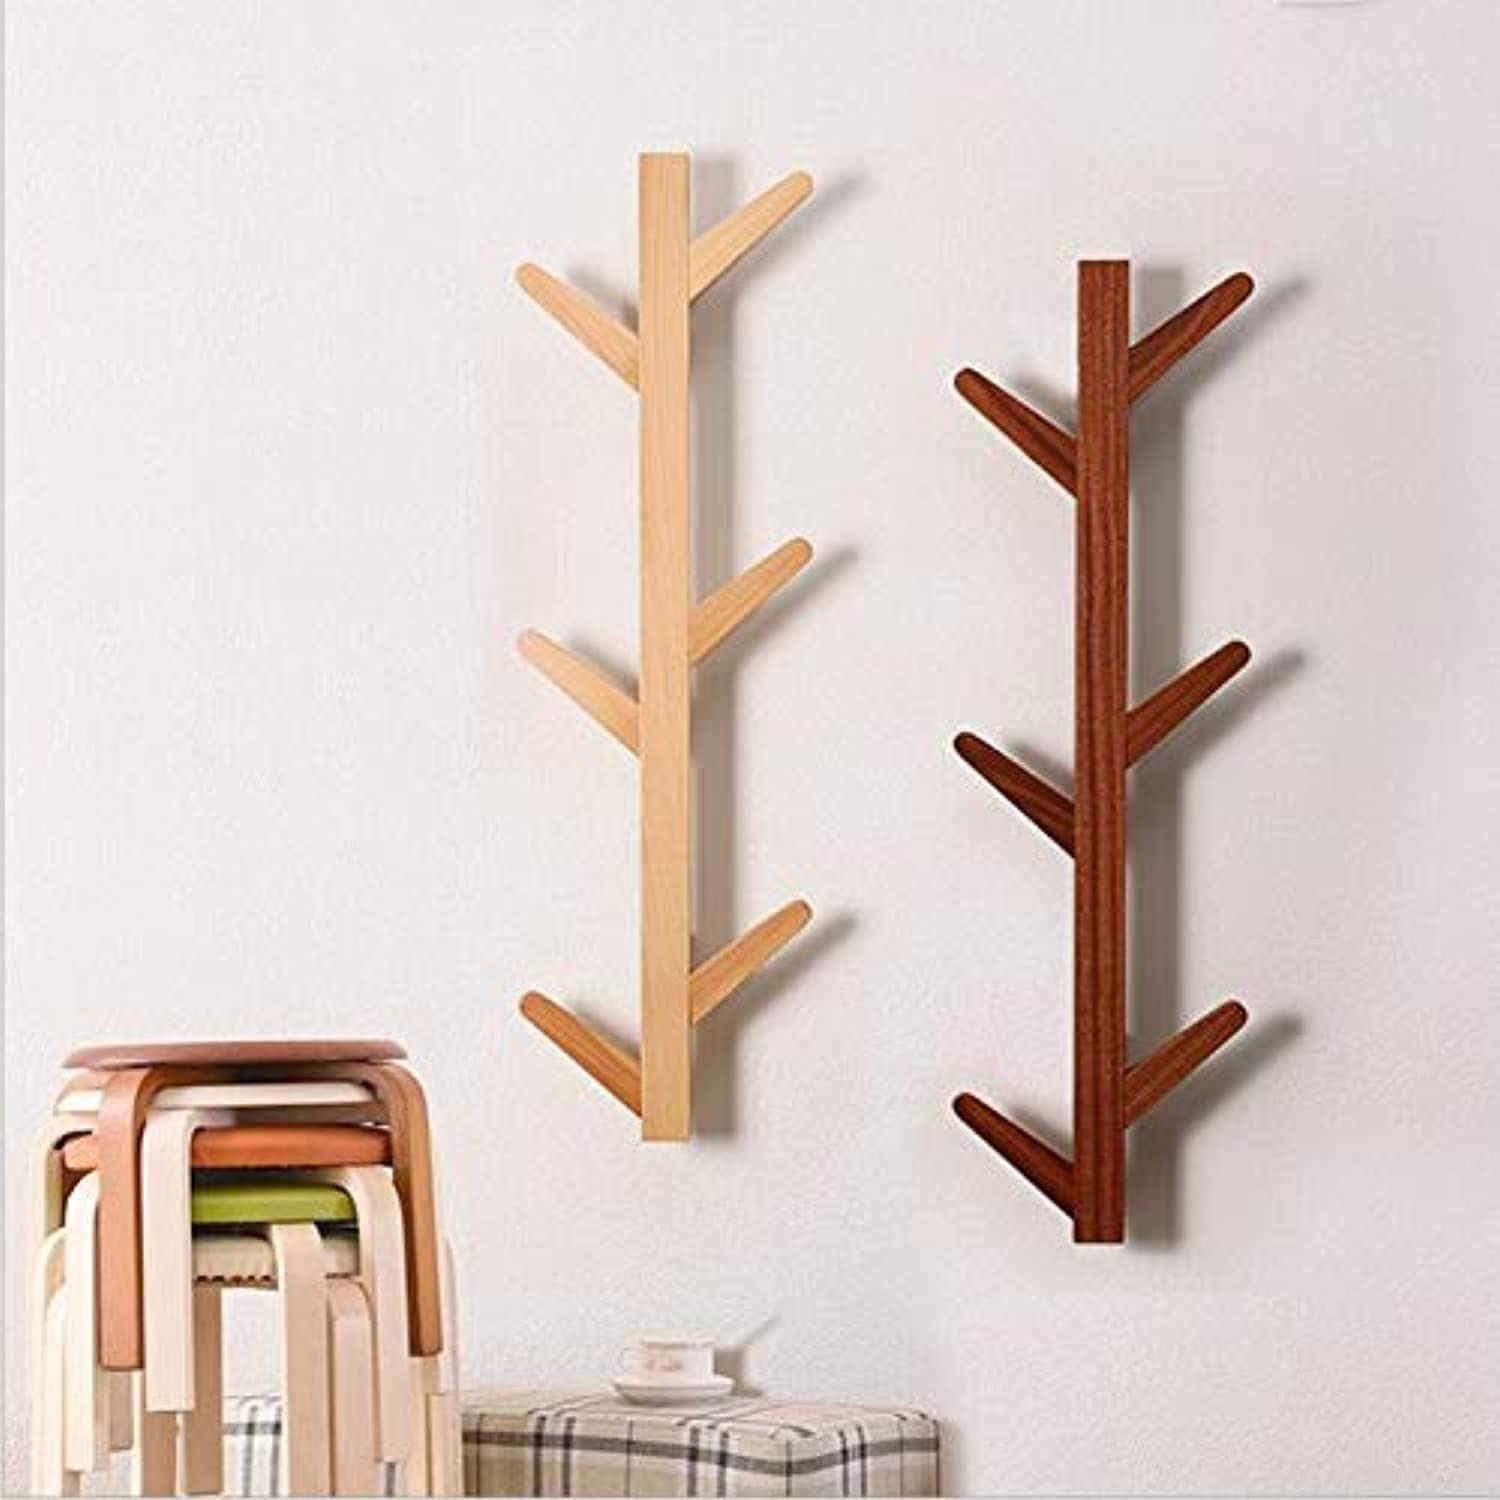 Coat Rack Solid Wood Tree twig Wall Hook Towel Rack for Home Office Hallway Waiting Room Living Room Bedroom 6 Hooks Black Ebony